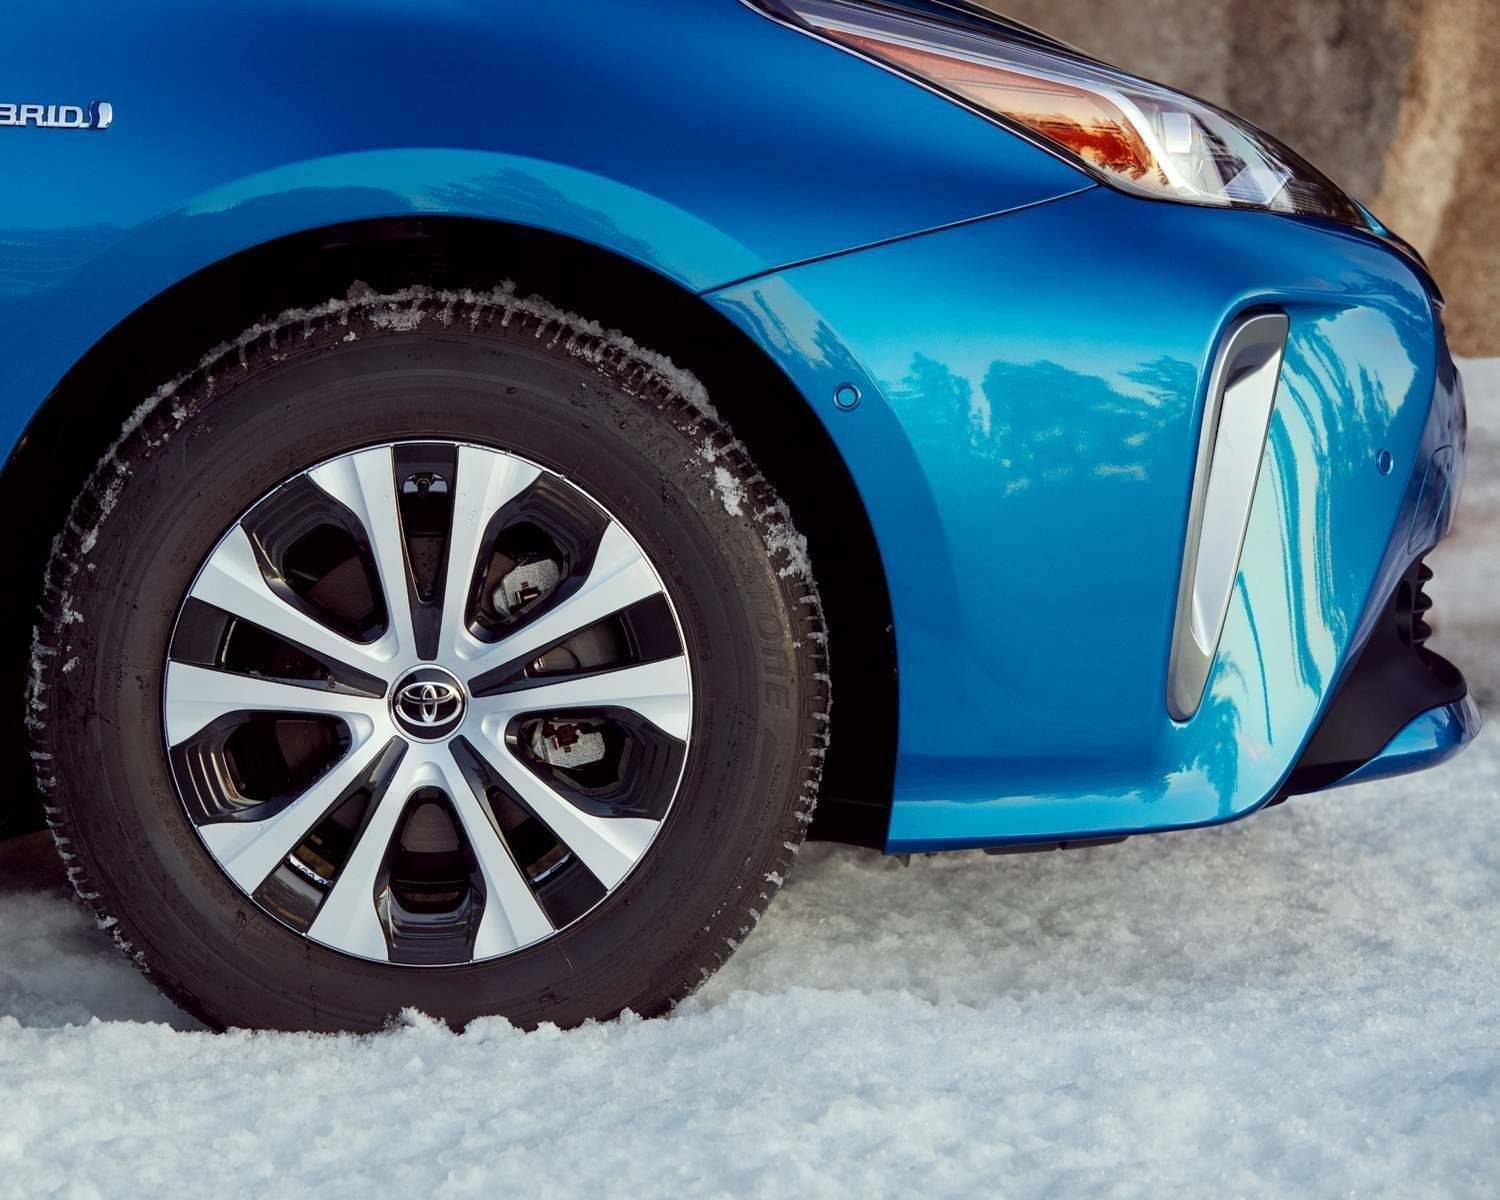 Prius Technology Advanced AWD-e wheels